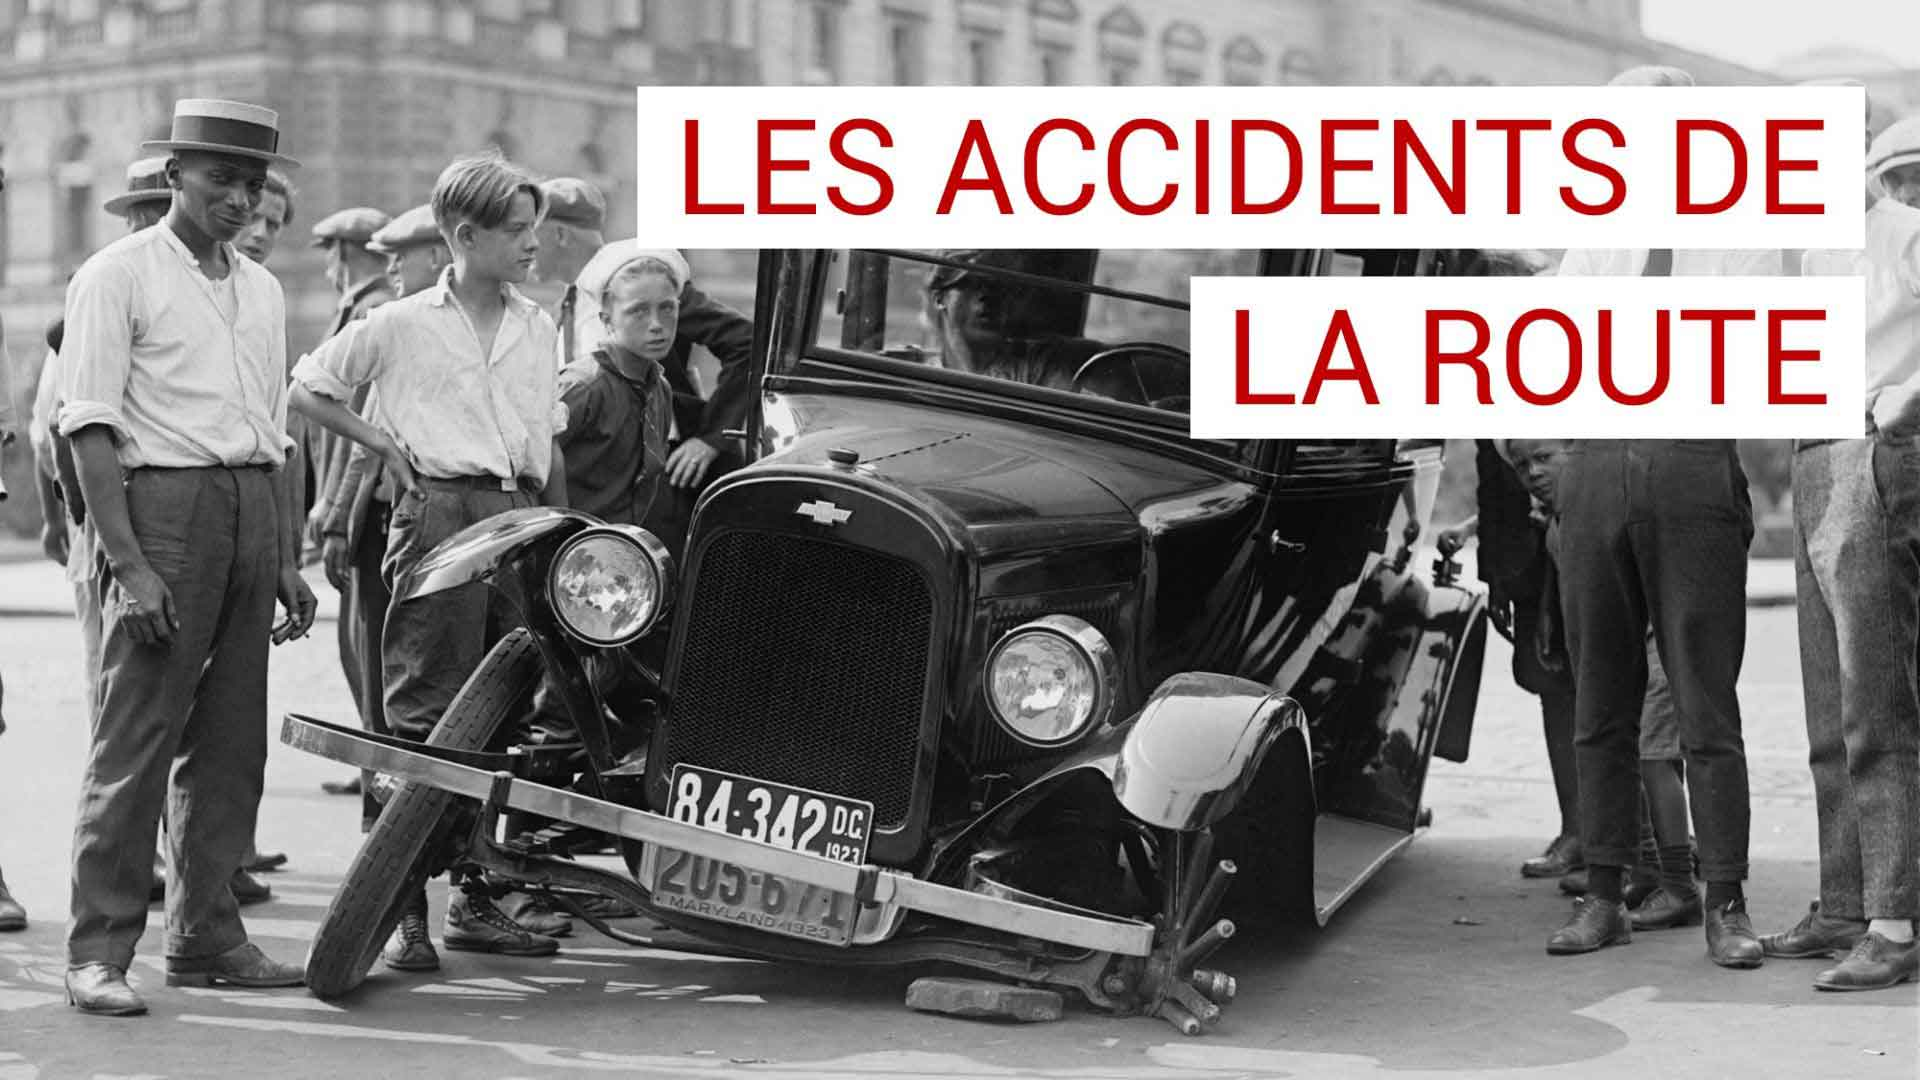 Les accidents de la route, l'analyse